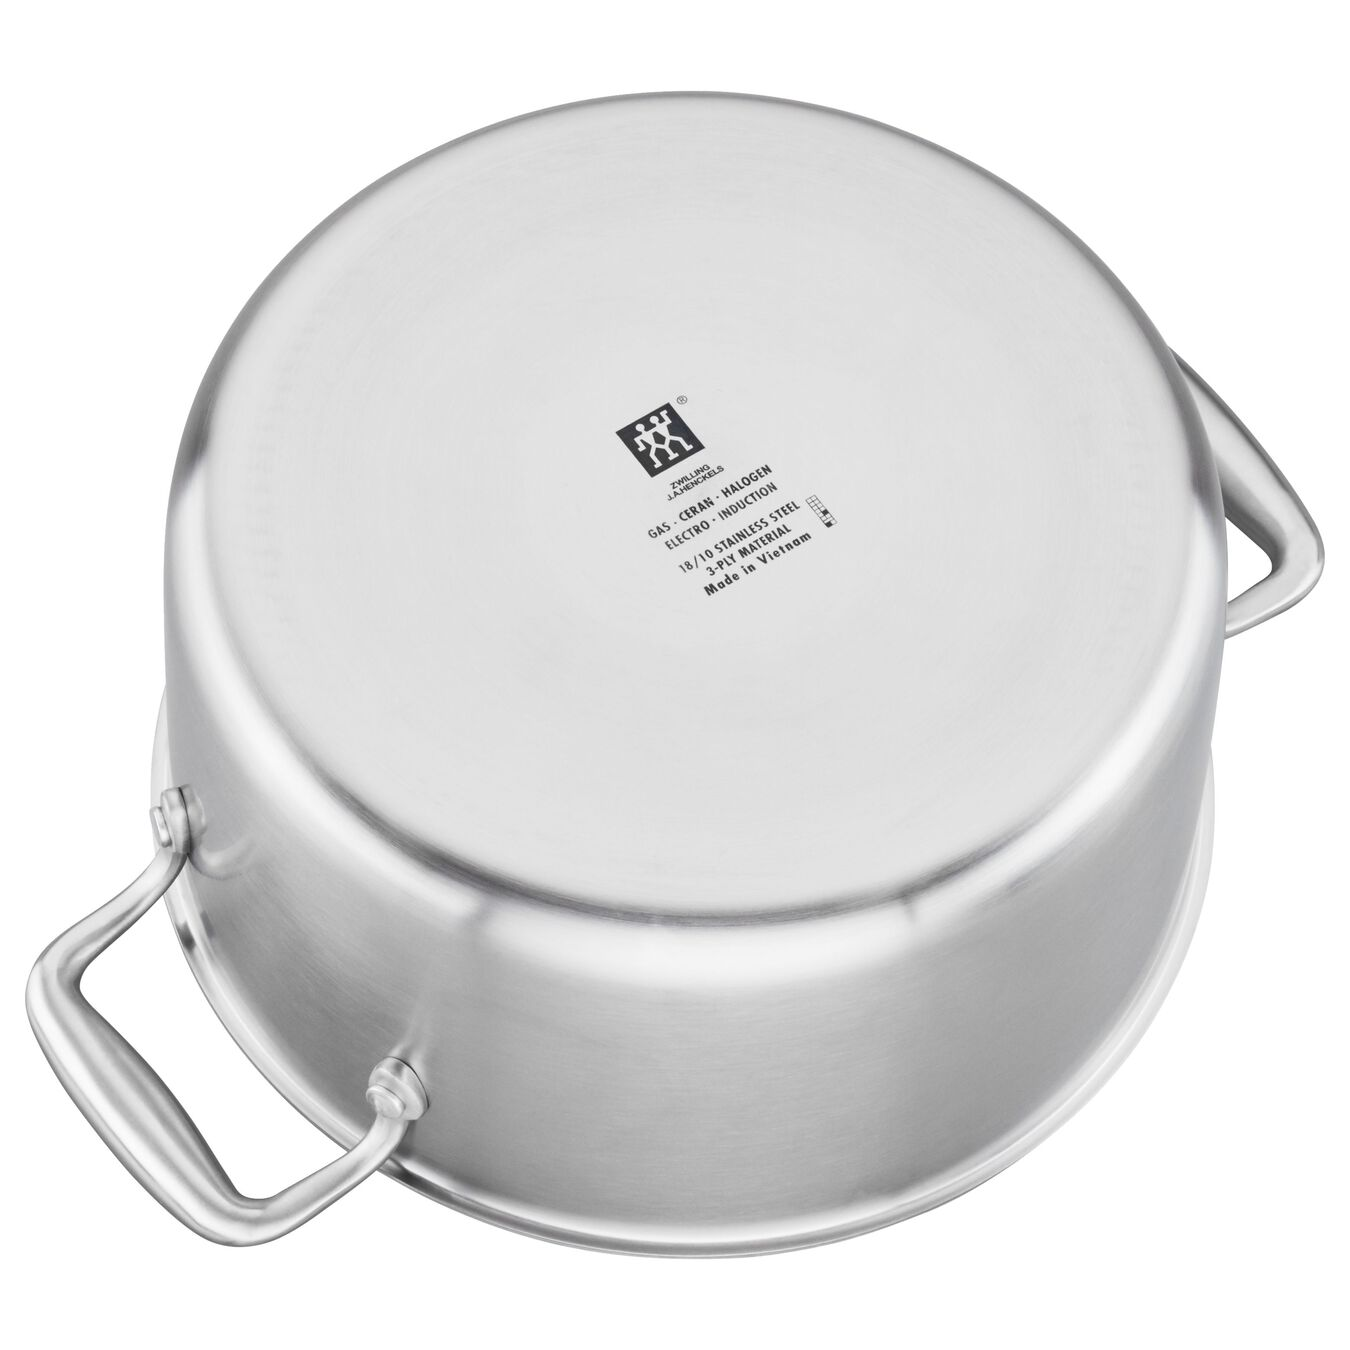 3-ply 6-qt Stainless Steel Dutch Oven,,large 4